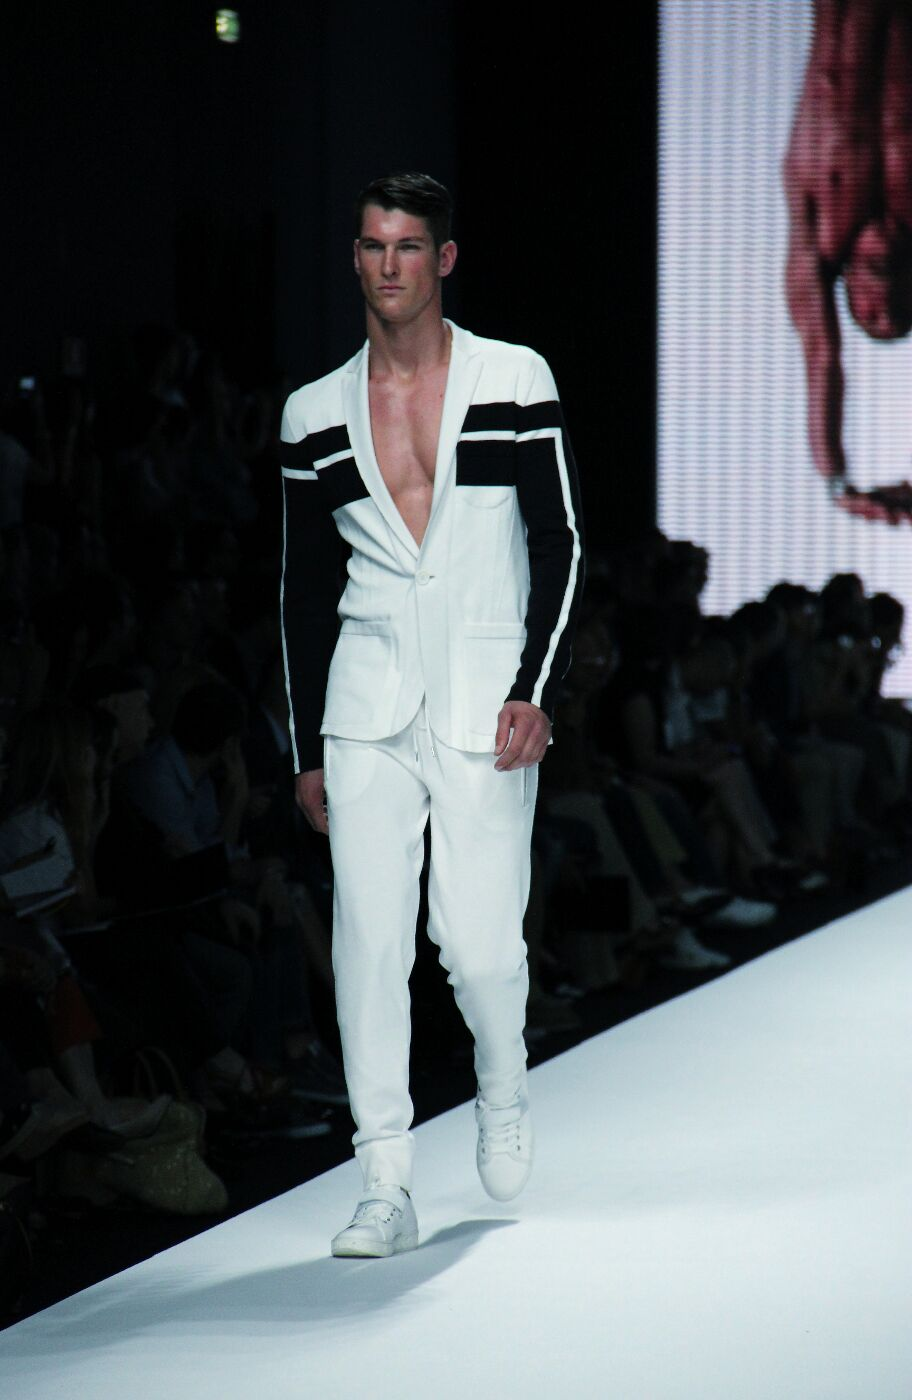 dirk-bikkembergs-sport-couture-spring-summer-2012-men-collection-milano-fashion-week-2012-dirk-bikkembergs-sport-couture-primavera-estate-dirk-bikkembergs-sport-couture-fashion-show-catwalk